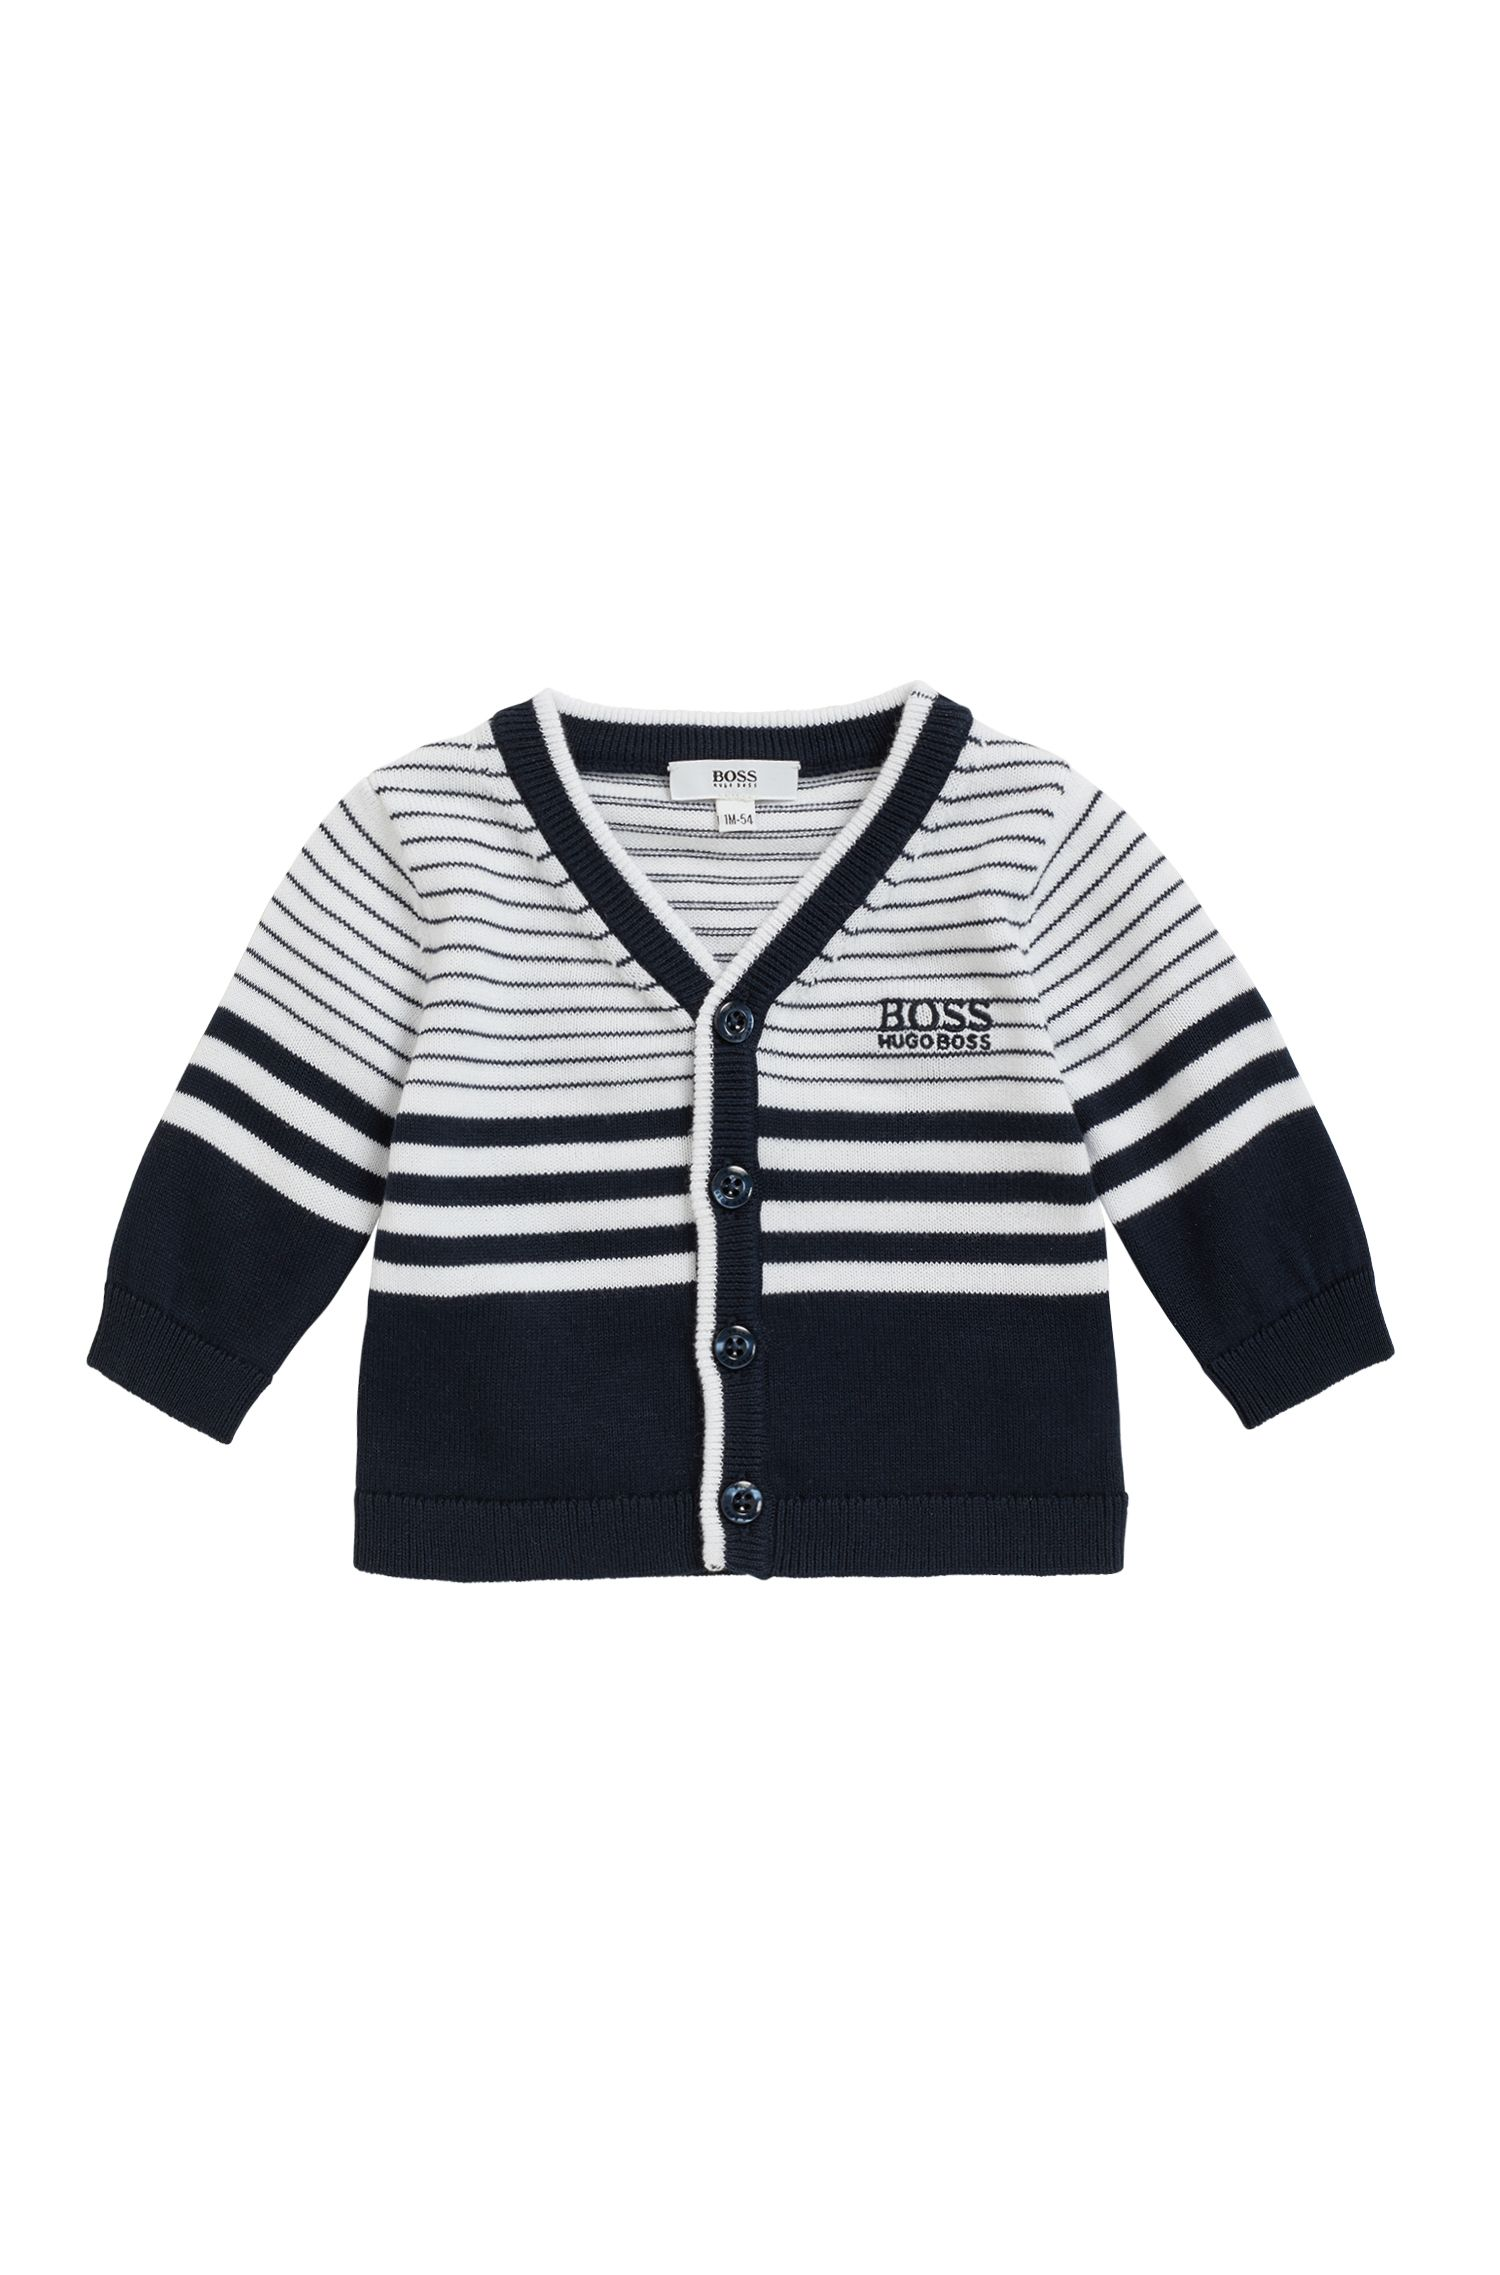 Baby boy knitted cardigan in pure cotton, Patterned